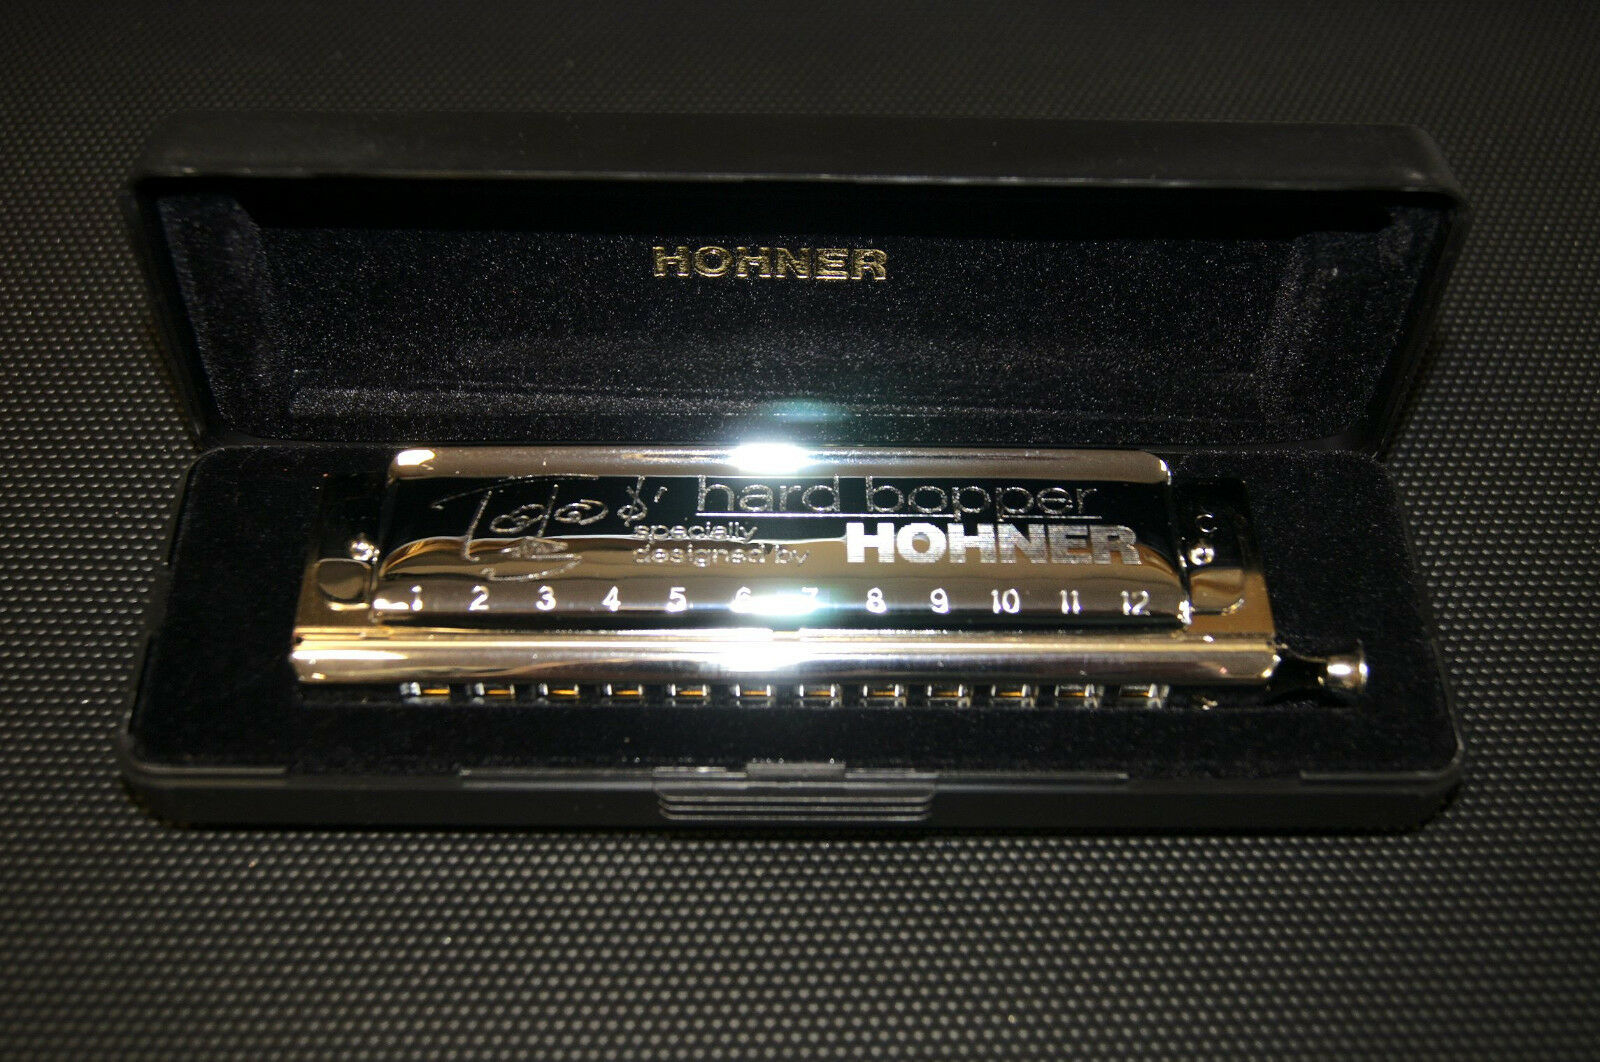 Harmonica chromatique Hohner  Toots  Thielemans Thielemans Thielemans  Hard Bopper  Do   C. Neuf. f78fd1